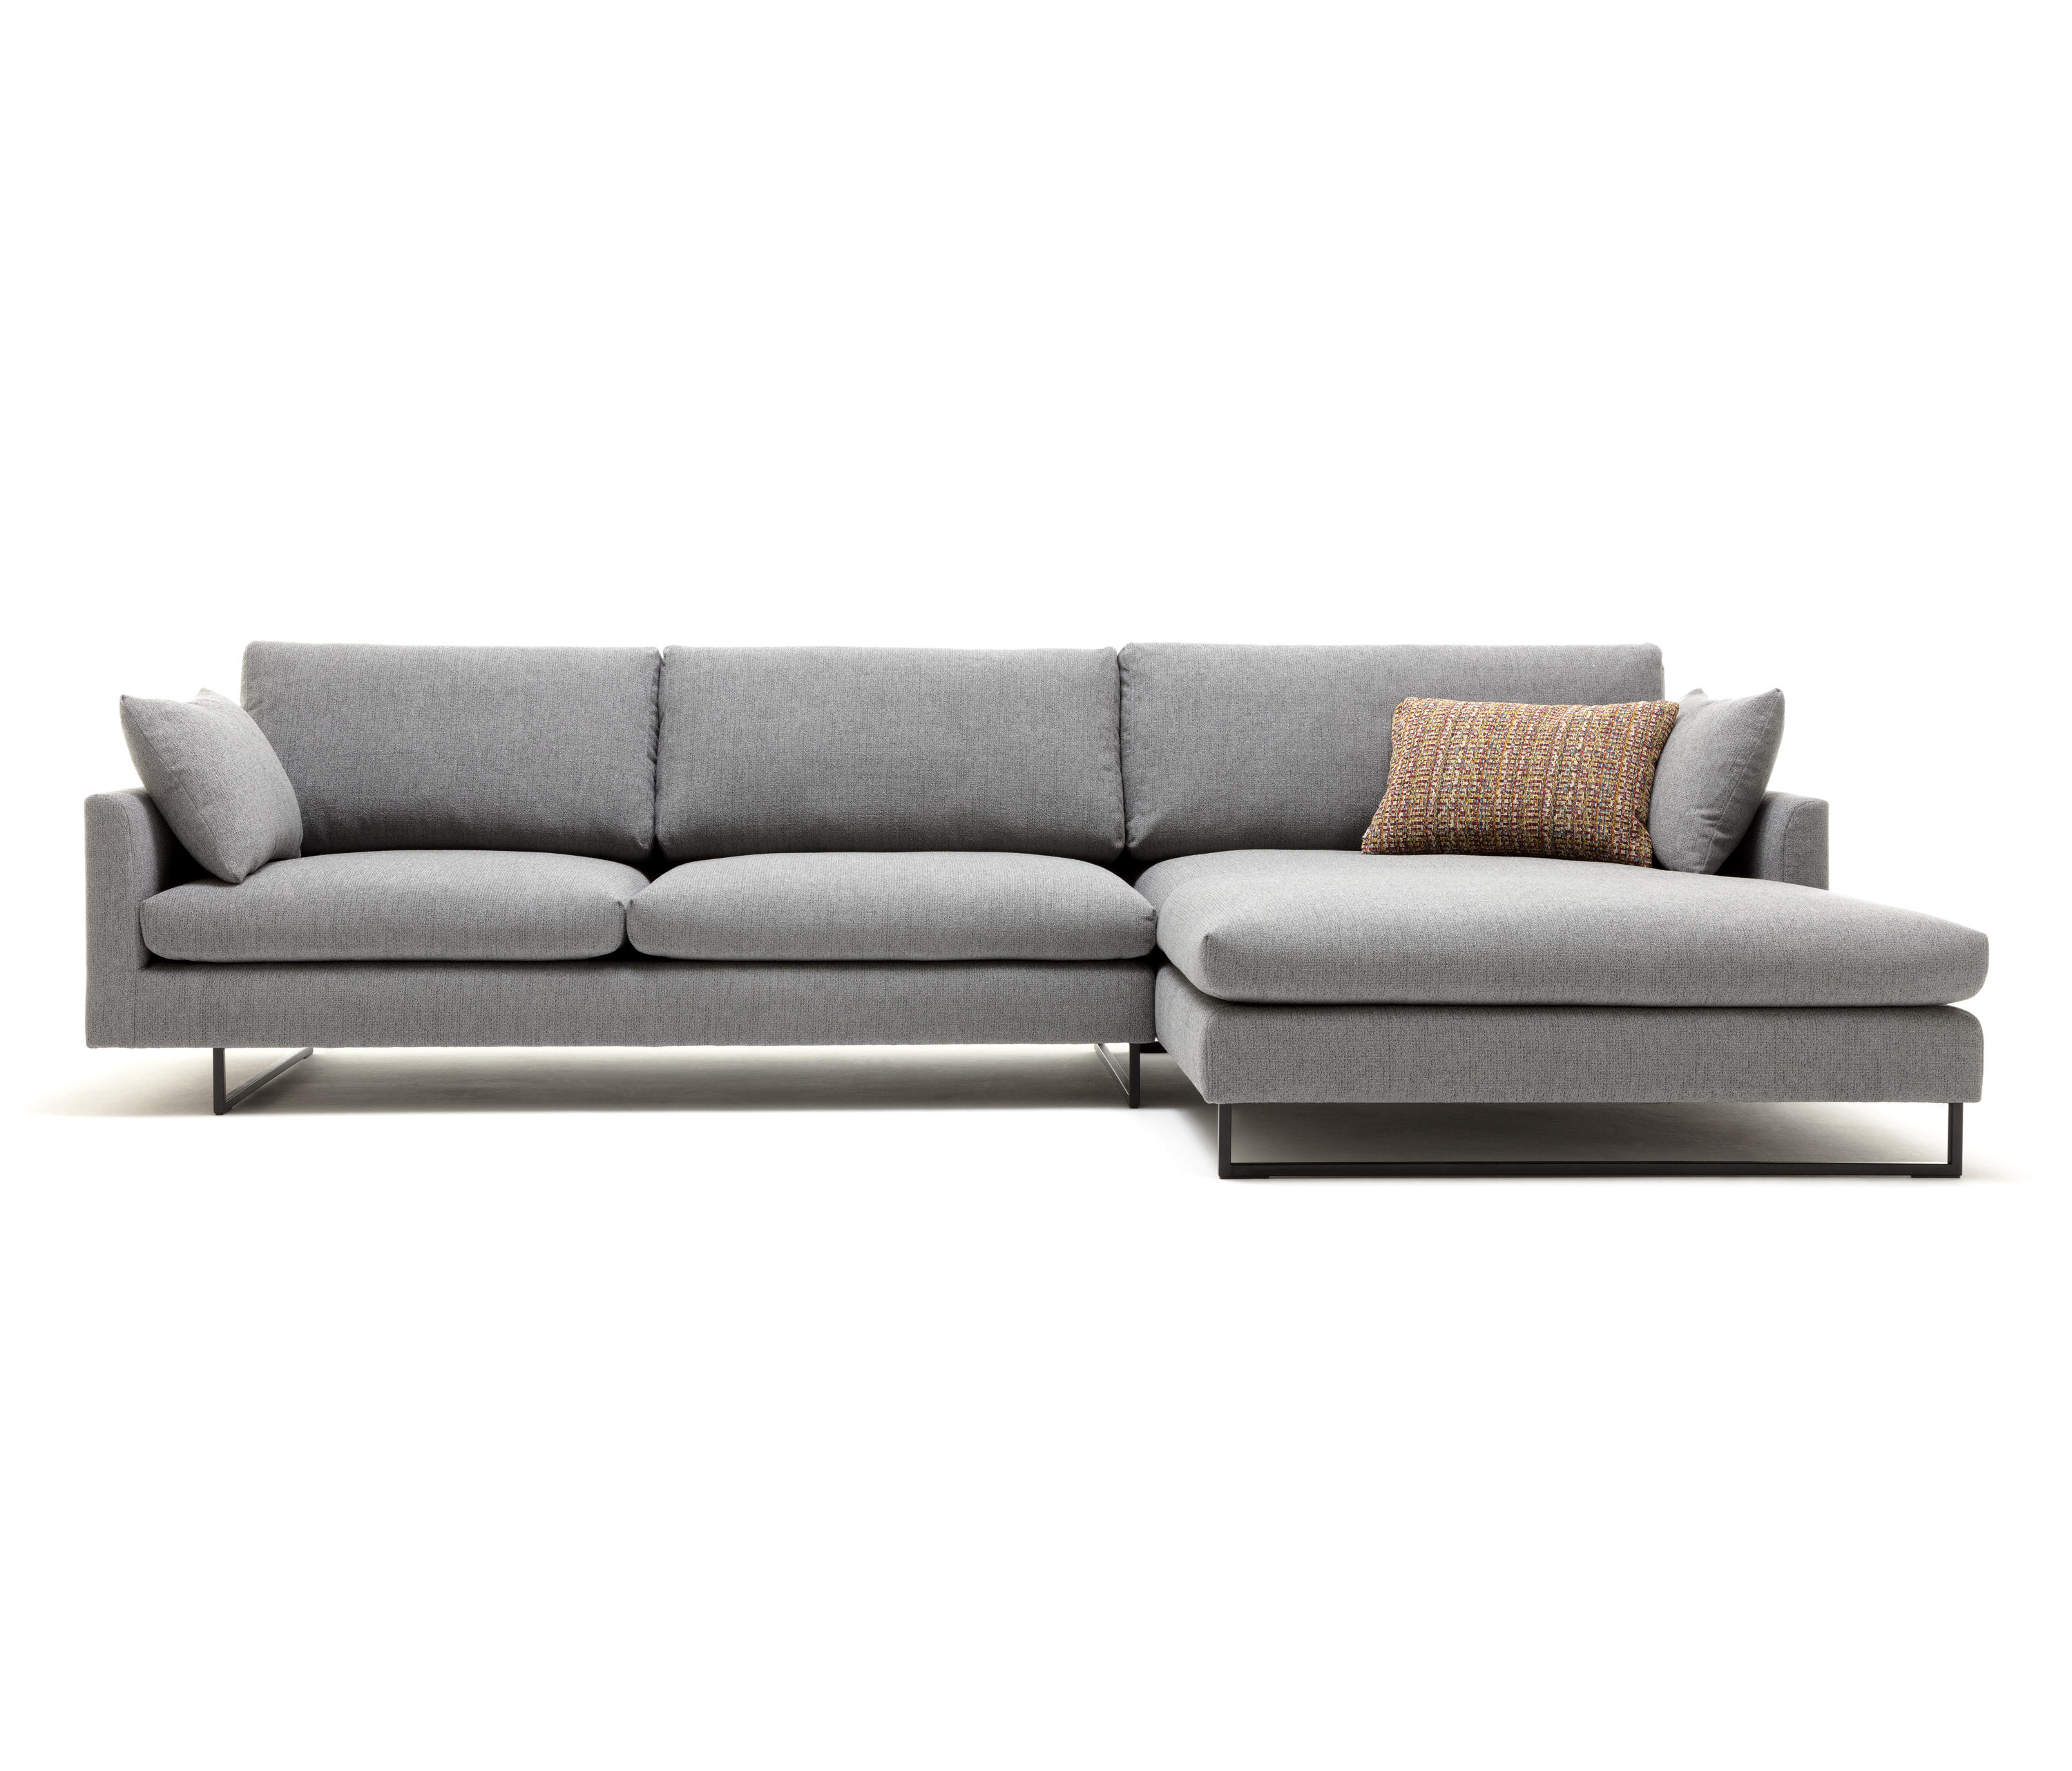 Freistil 134 Sofas Von Freistil Architonic